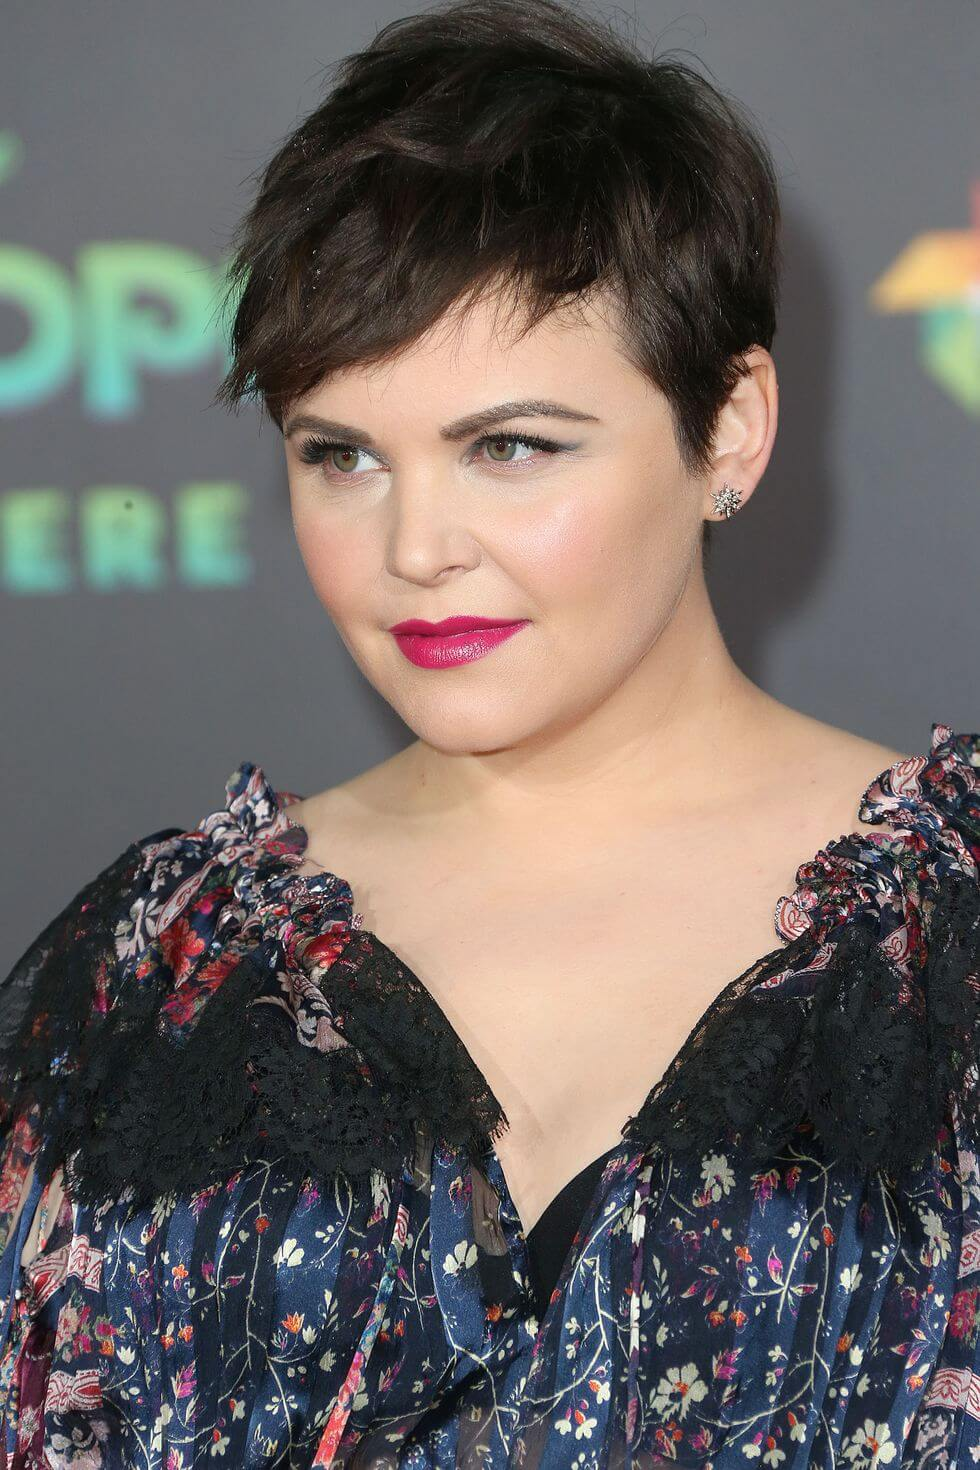 Women's Short Haircuts for Round Faces   25+